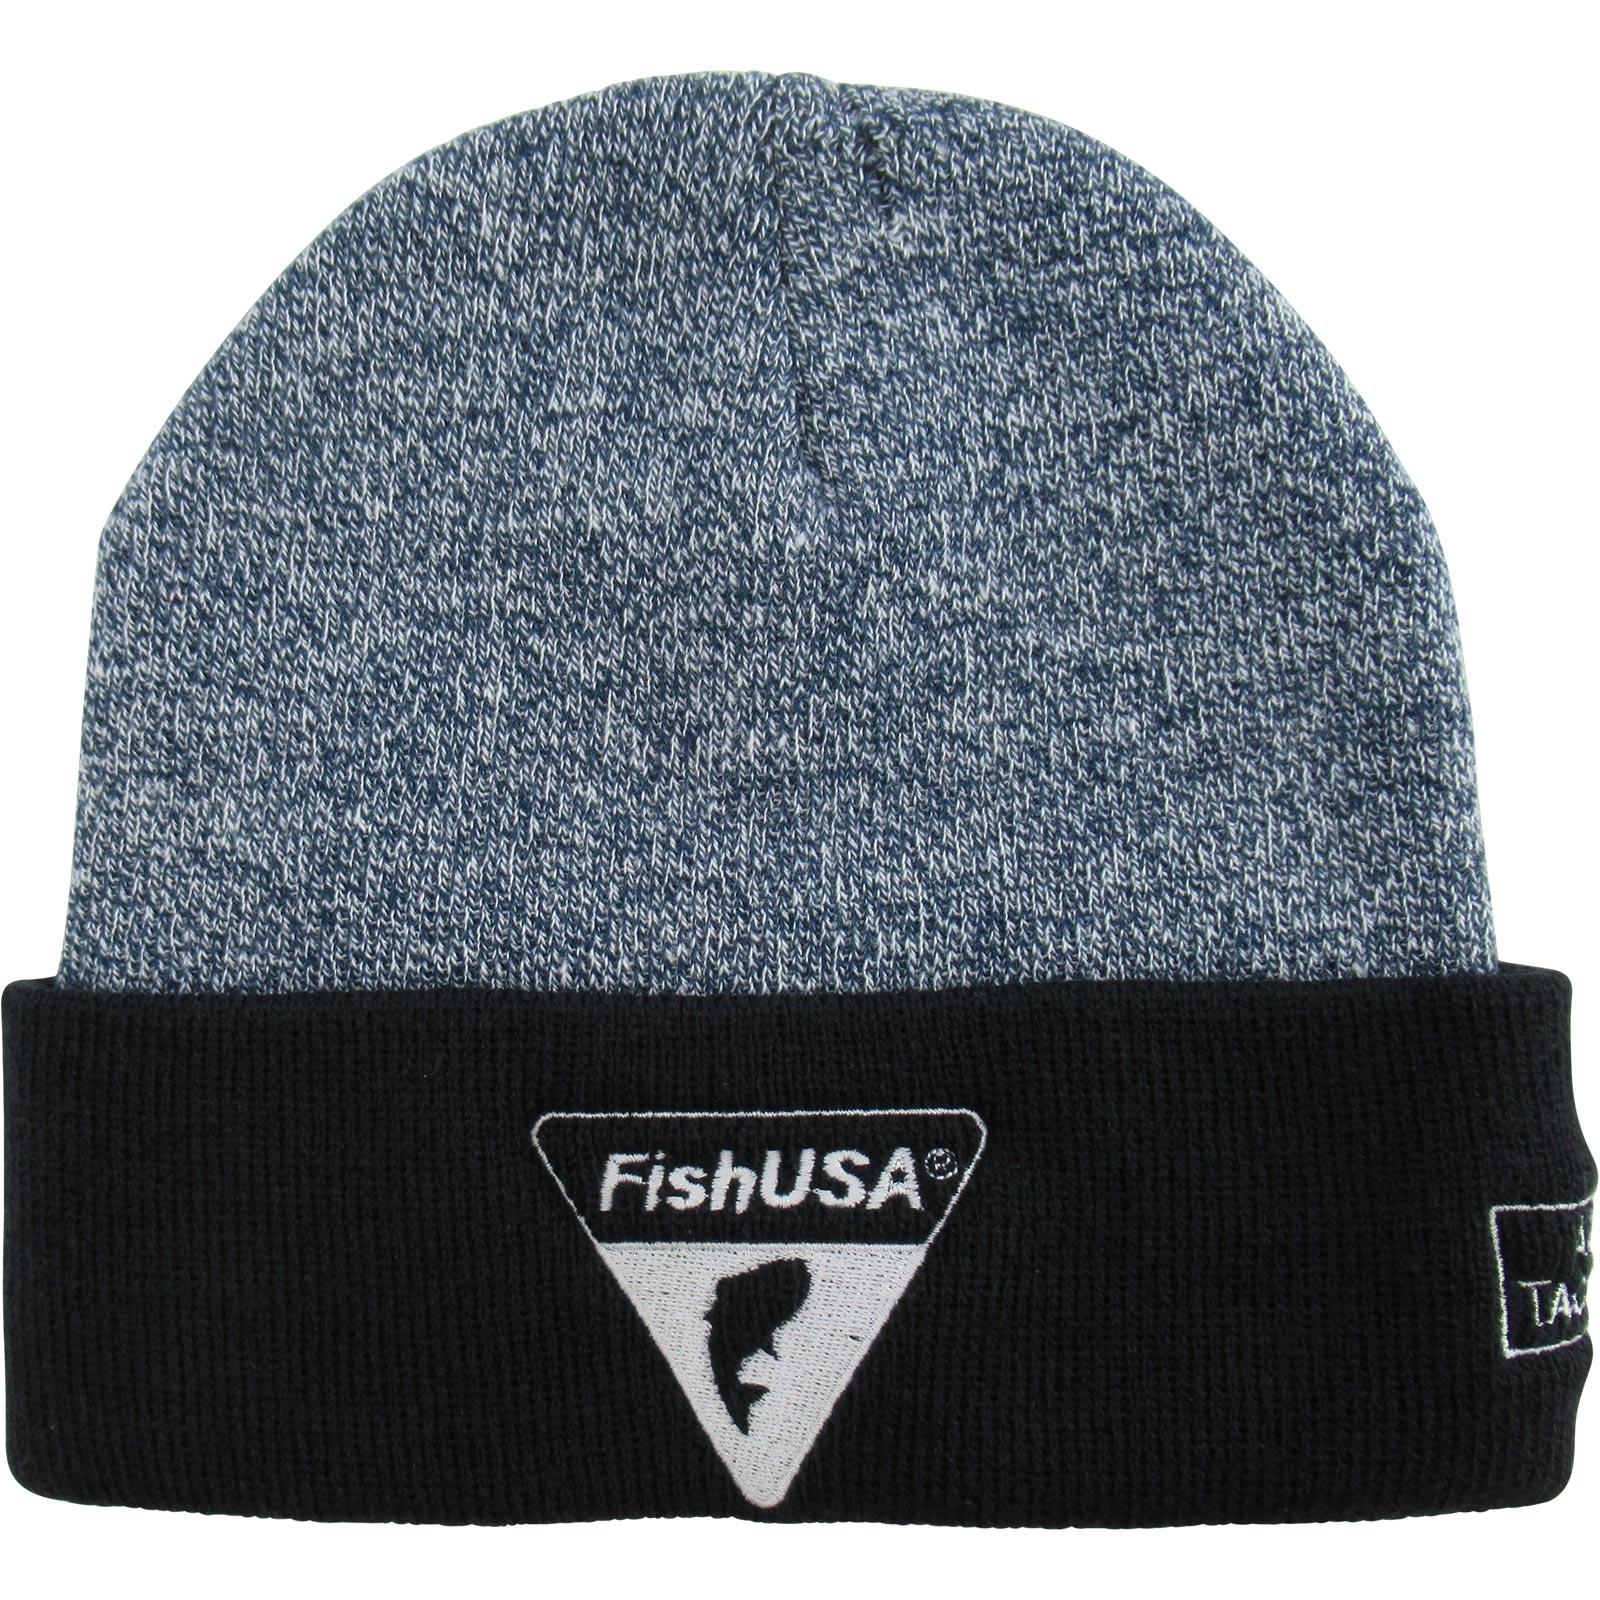 FishUSA Men's Two-Tone Cuff Beanie